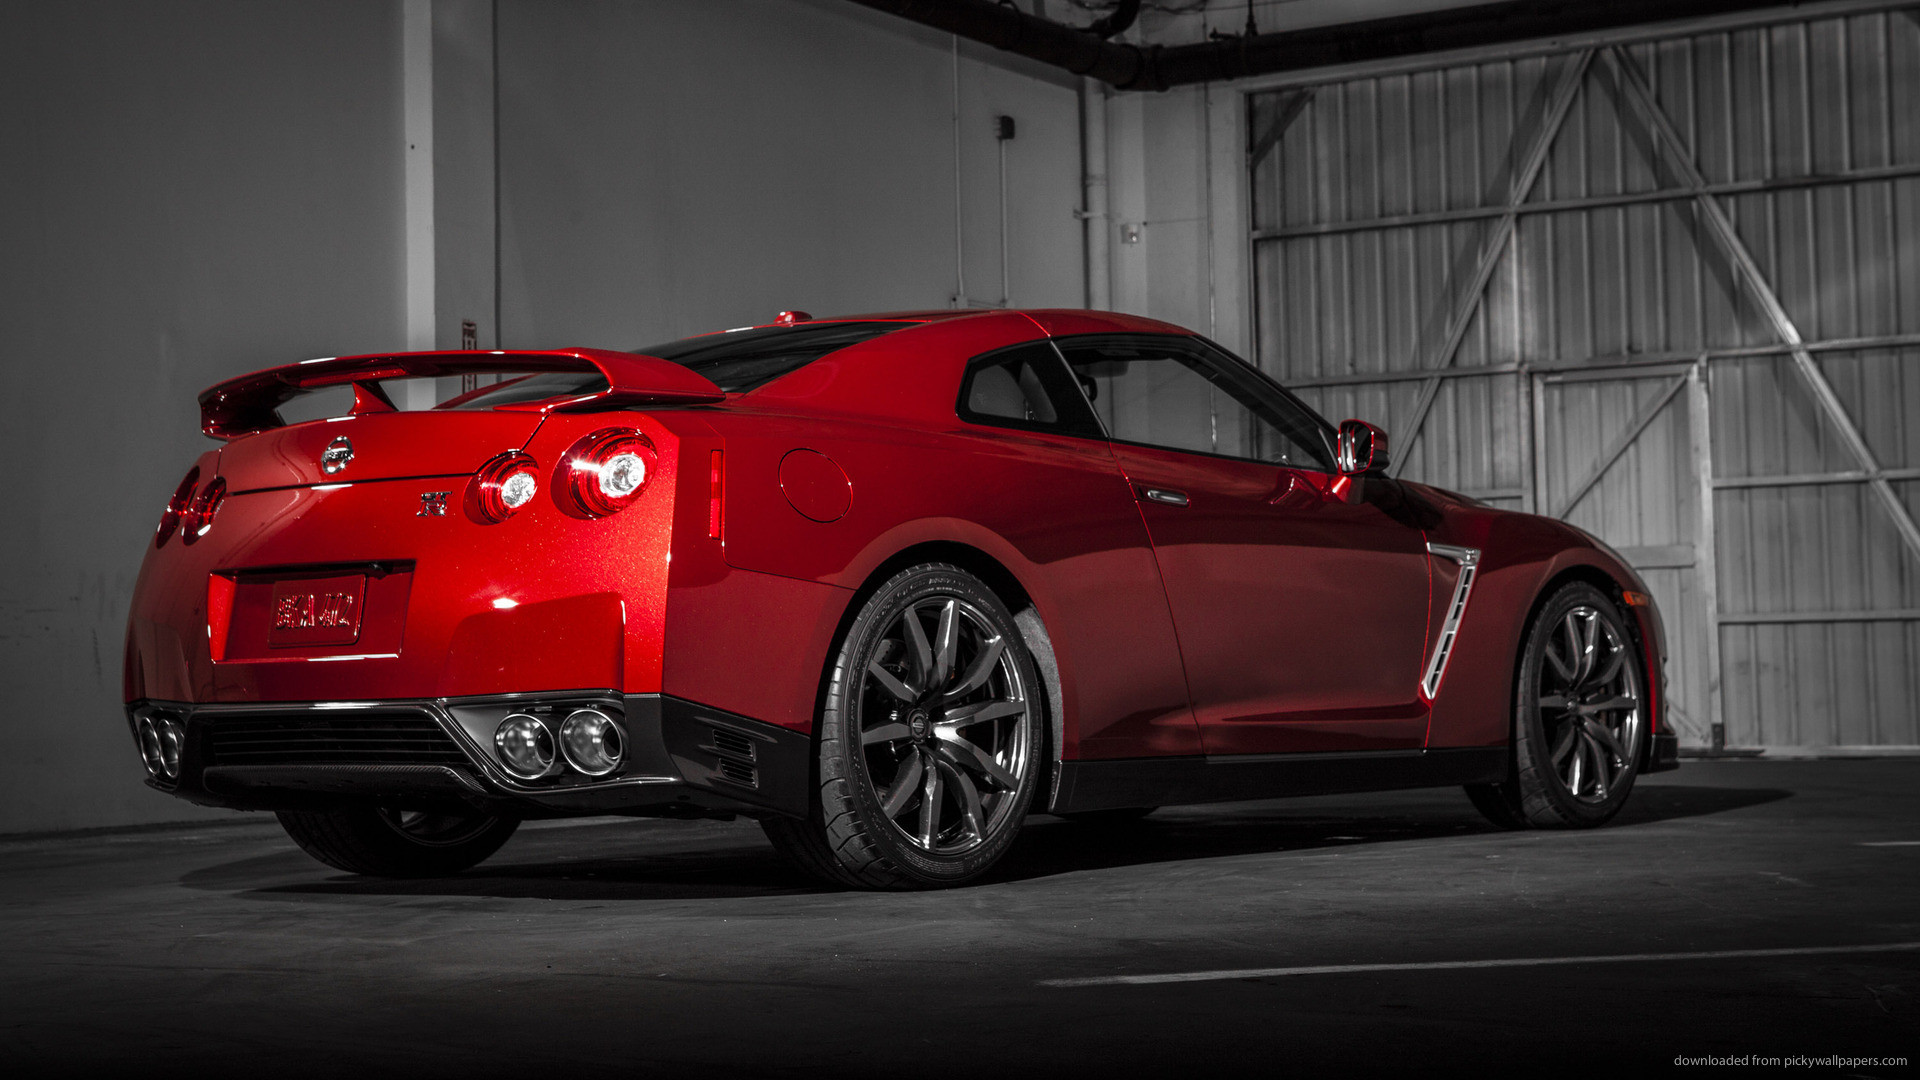 1920x1080 Nissan GT R R35 Red Supercar At Sunset 4k HD Wallpaper